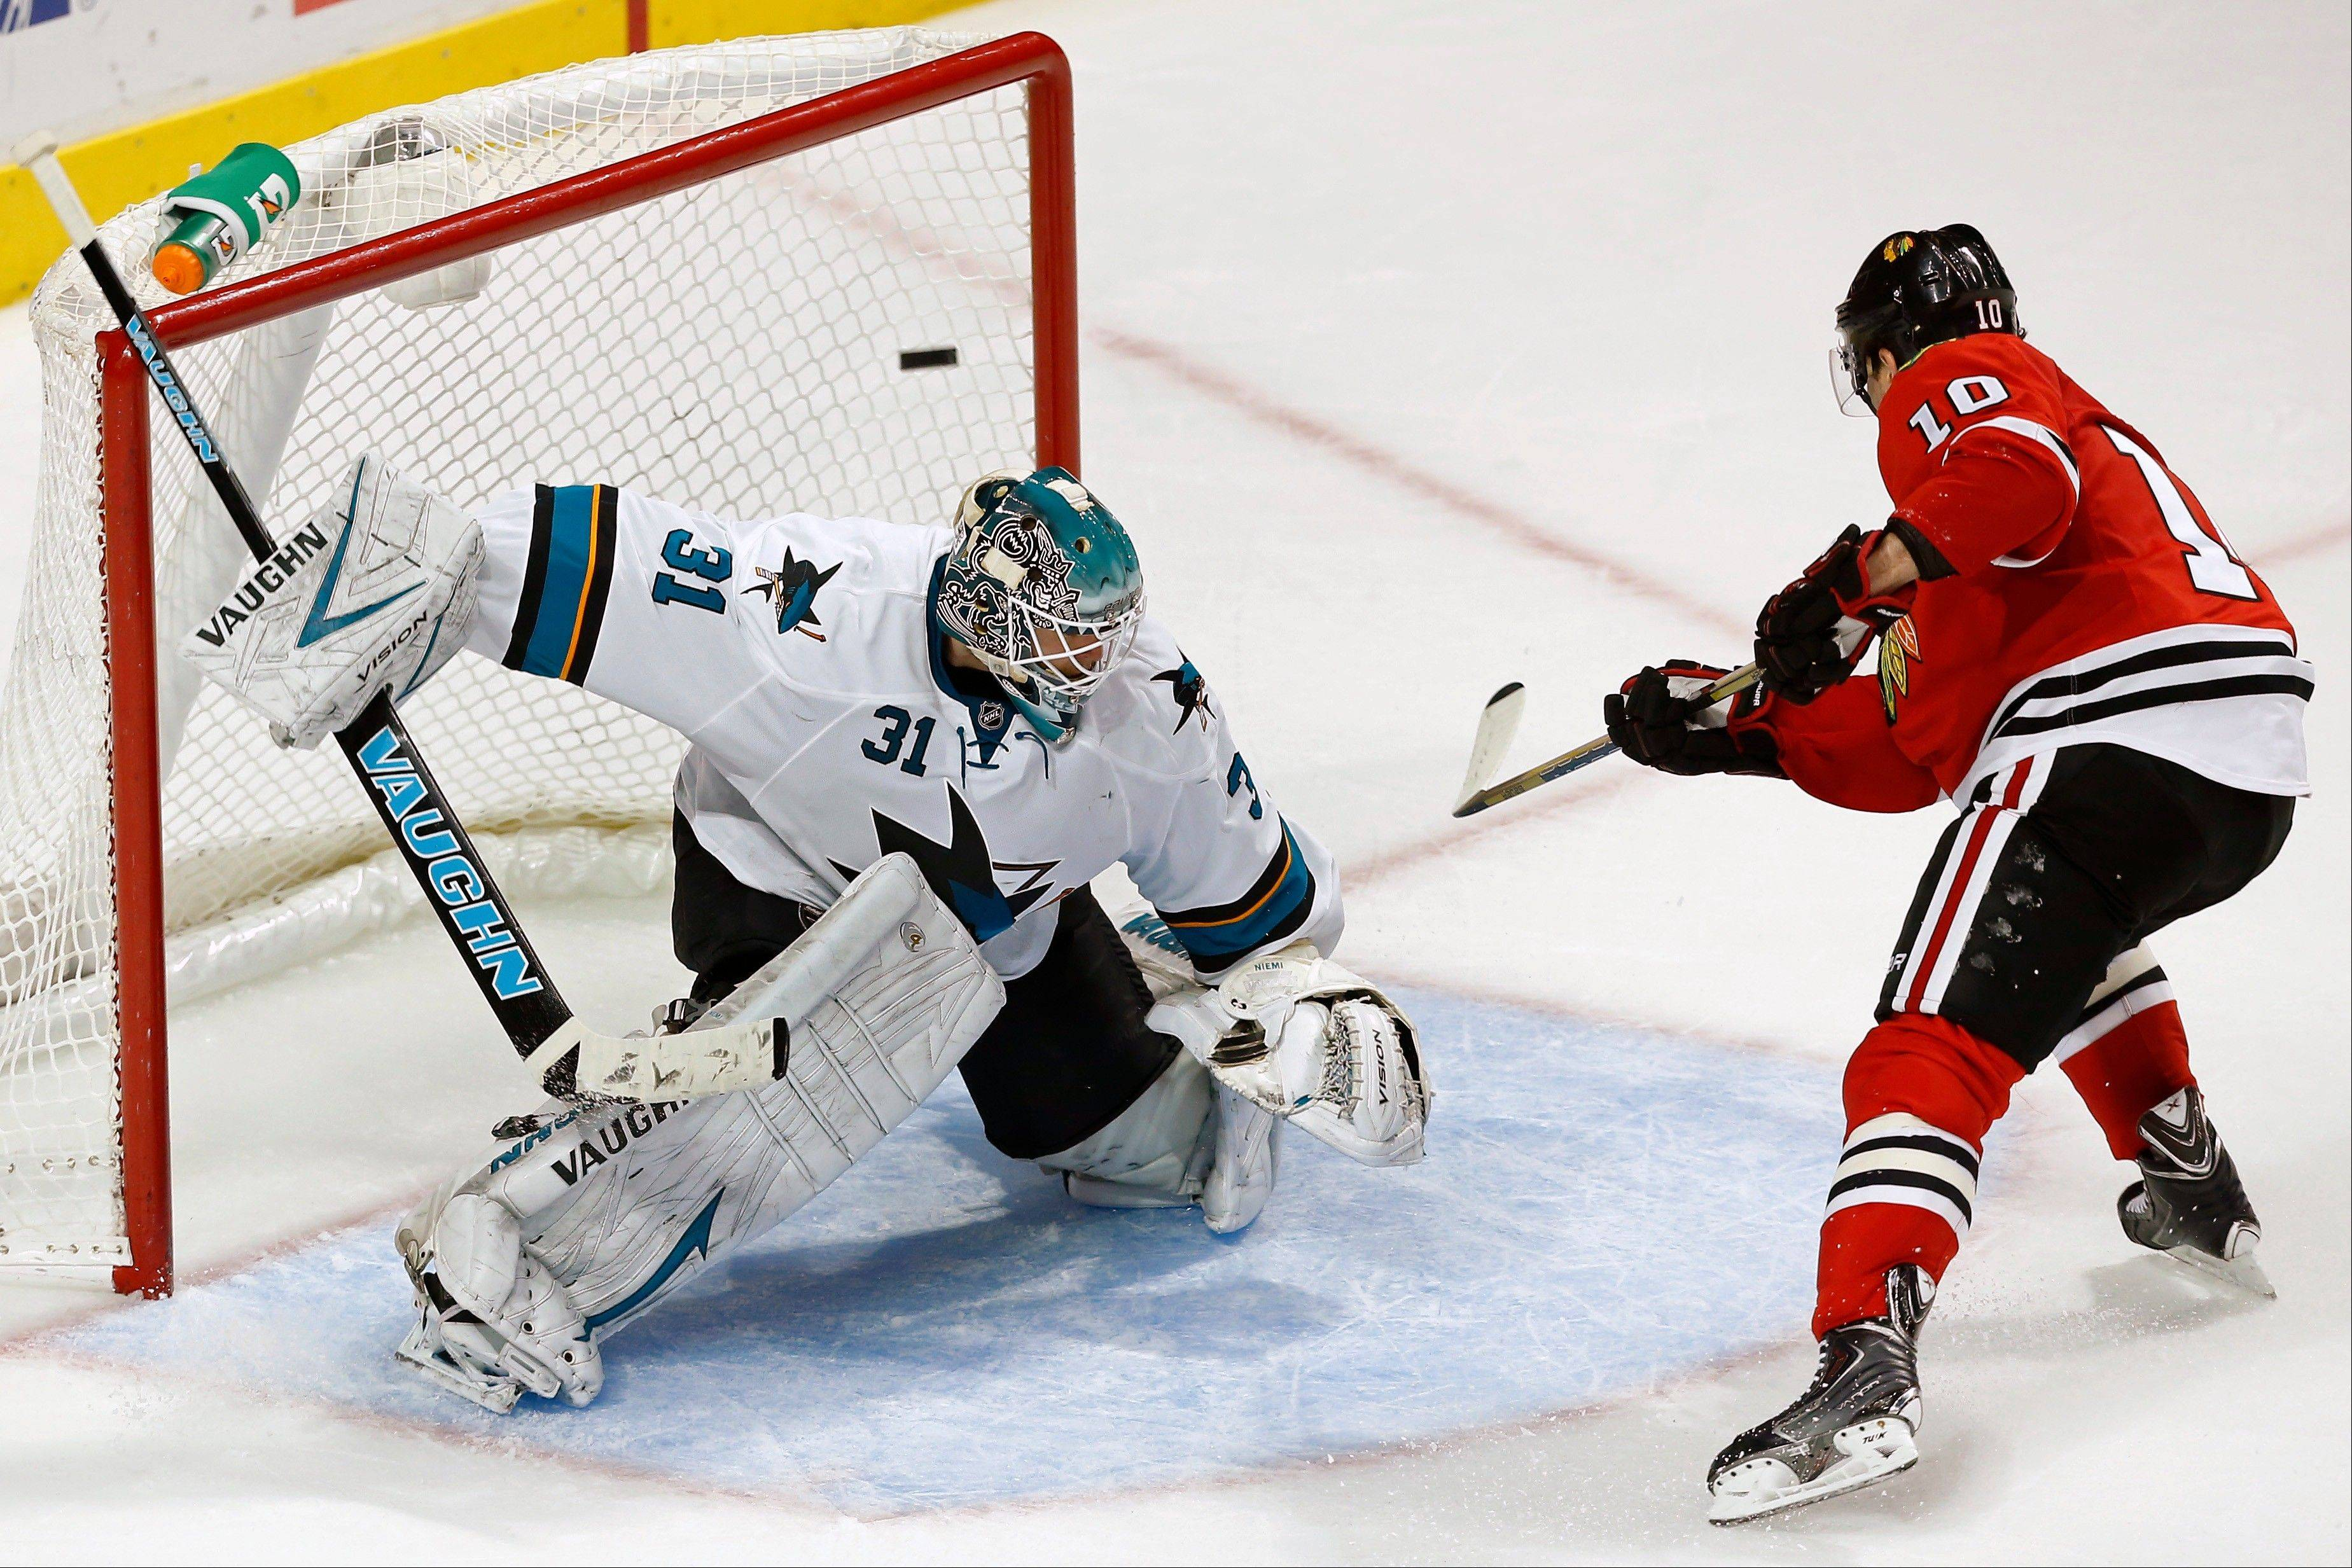 Patrick Sharp scores a goal past Sharks goalie Antti Niemi on a penalty shot during the third period of the Hawks' victory Sunday night.